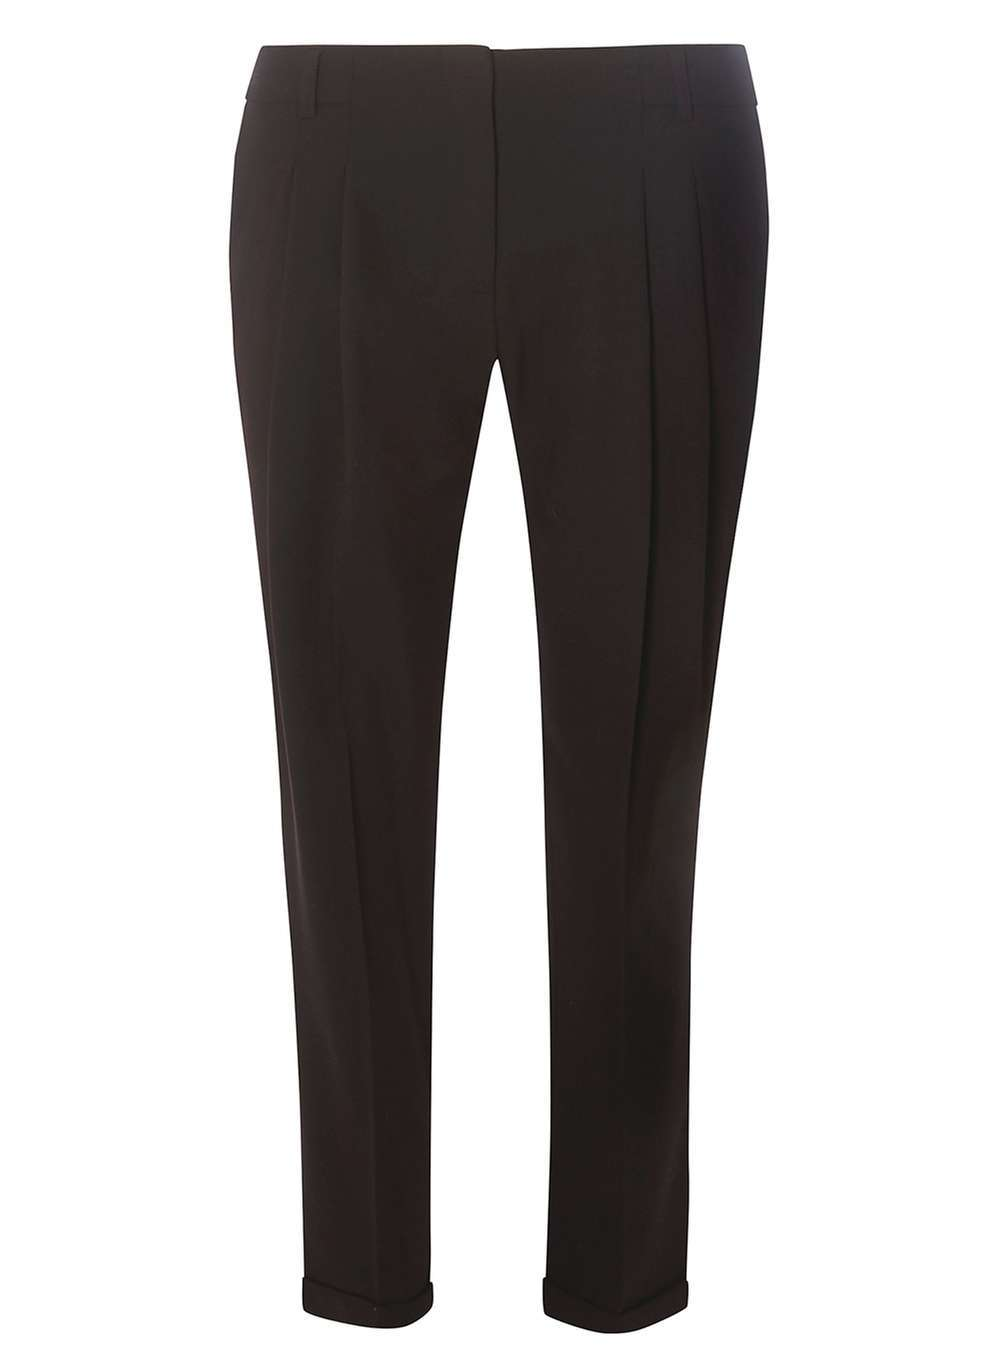 Womens Black Pleat Naples Trousers Black - pattern: plain; waist: mid/regular rise; predominant colour: black; occasions: work, creative work; length: ankle length; fibres: polyester/polyamide - stretch; fit: slim leg; pattern type: fabric; texture group: woven light midweight; style: standard; pattern size: standard (bottom); wardrobe: basic; season: a/w 2016